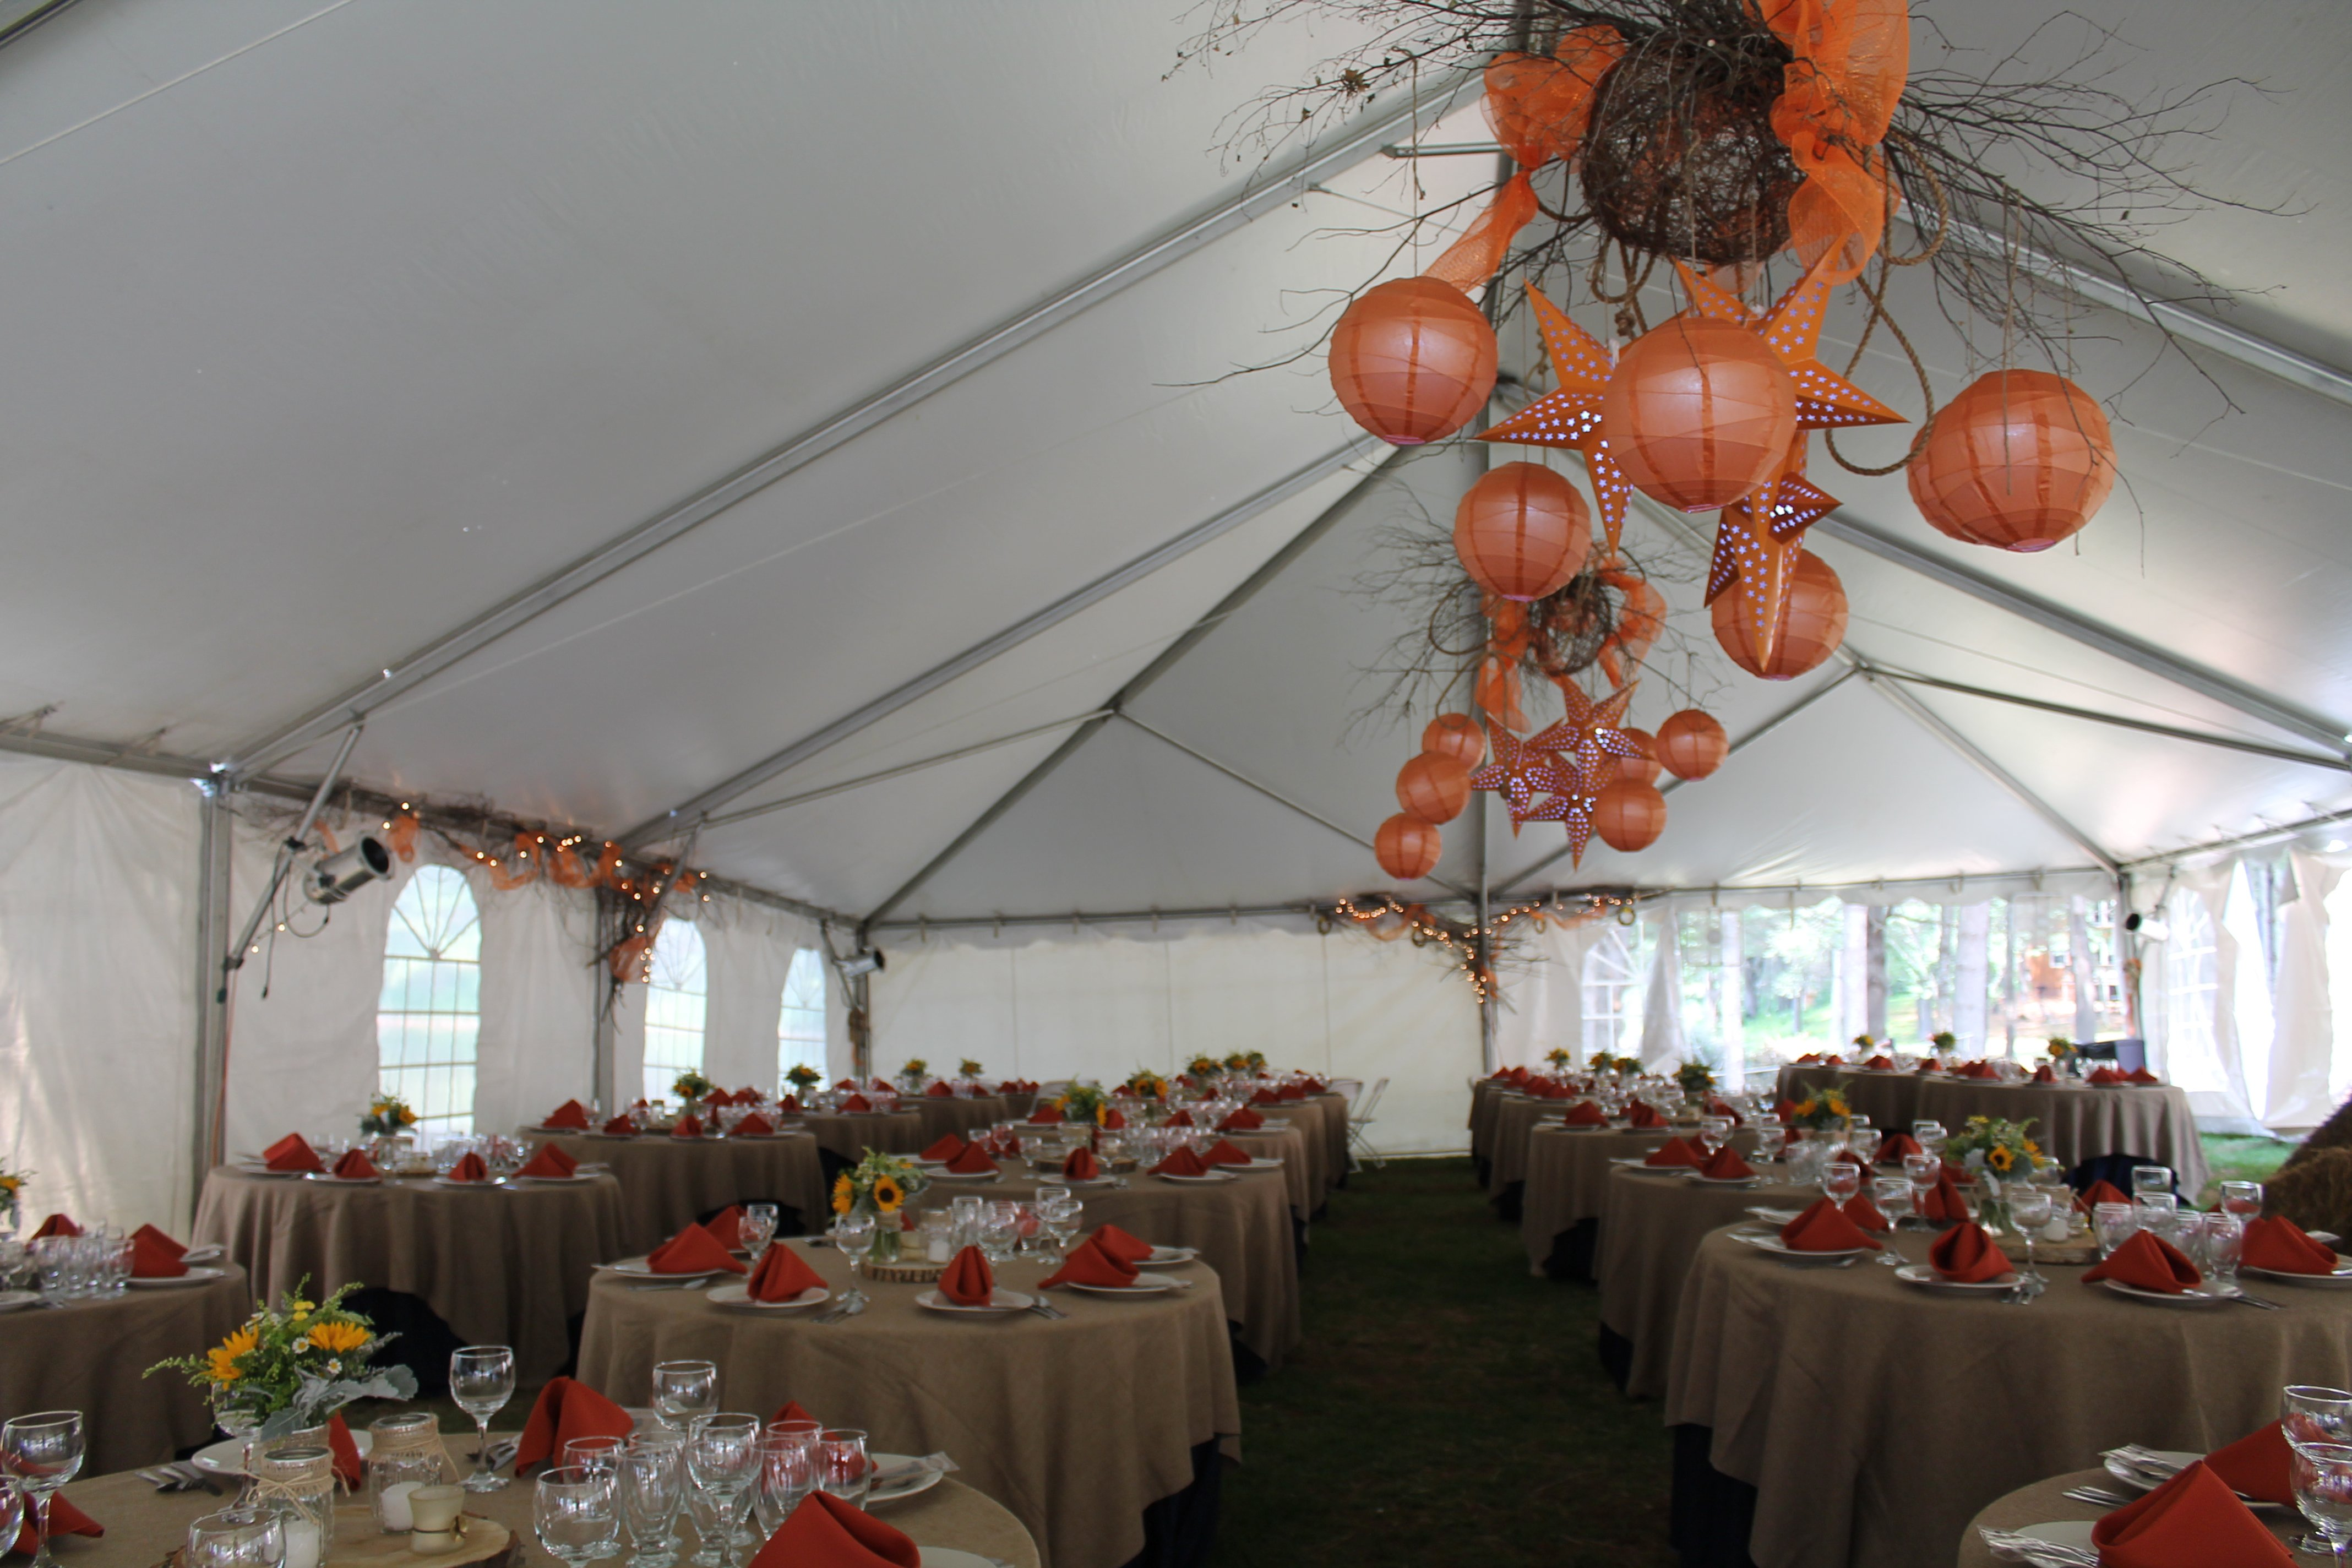 Design and decor rentals onsite from our talented staff.